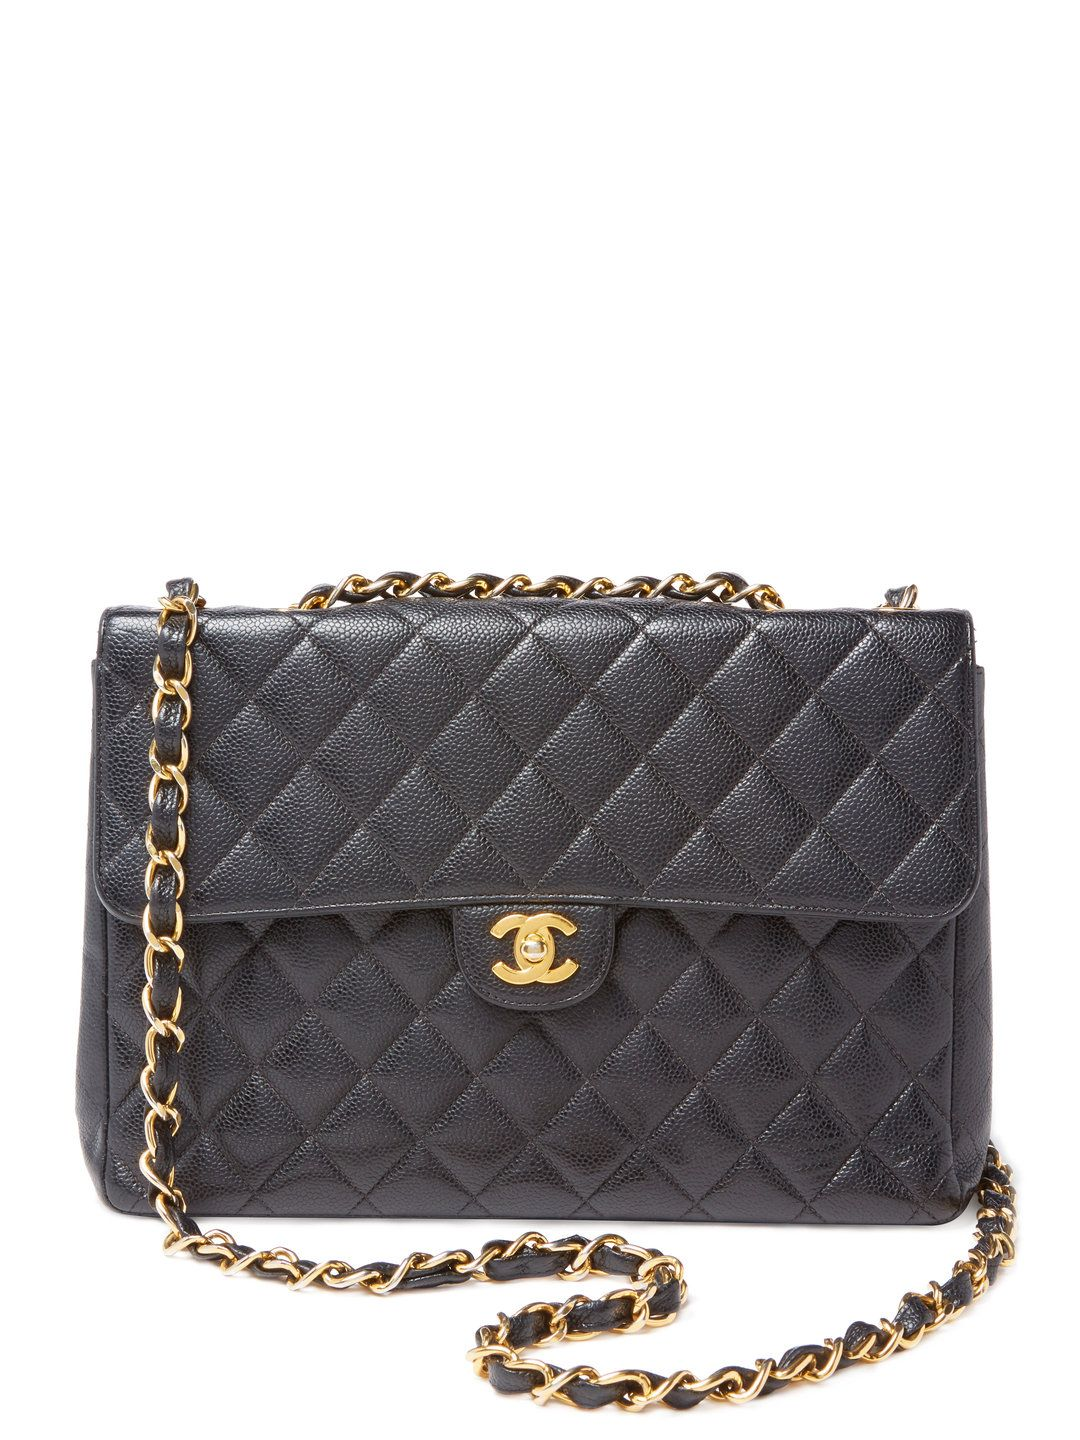 Black Quilted Caviar Single Flap Jumbo by Chanel at Gilt   Witch ... 4c7b397914